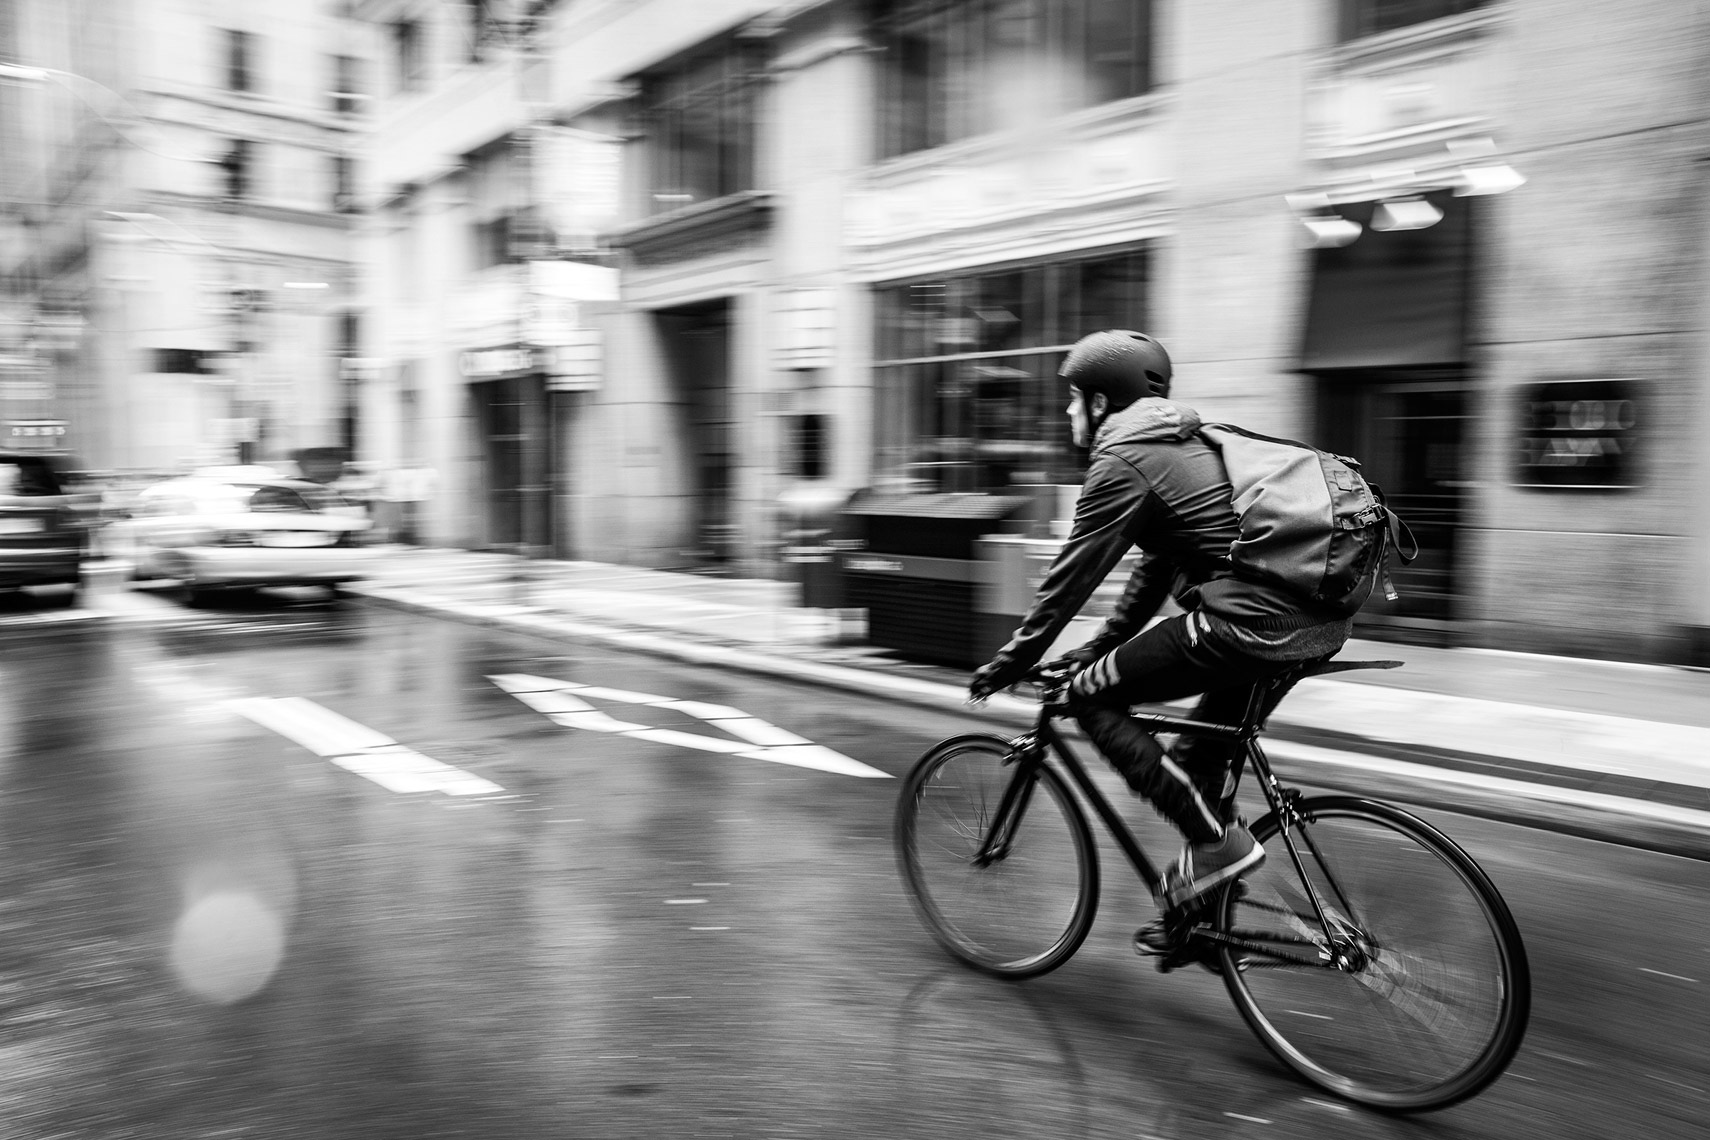 cyclists_bose_jussi_grznar-7721-2